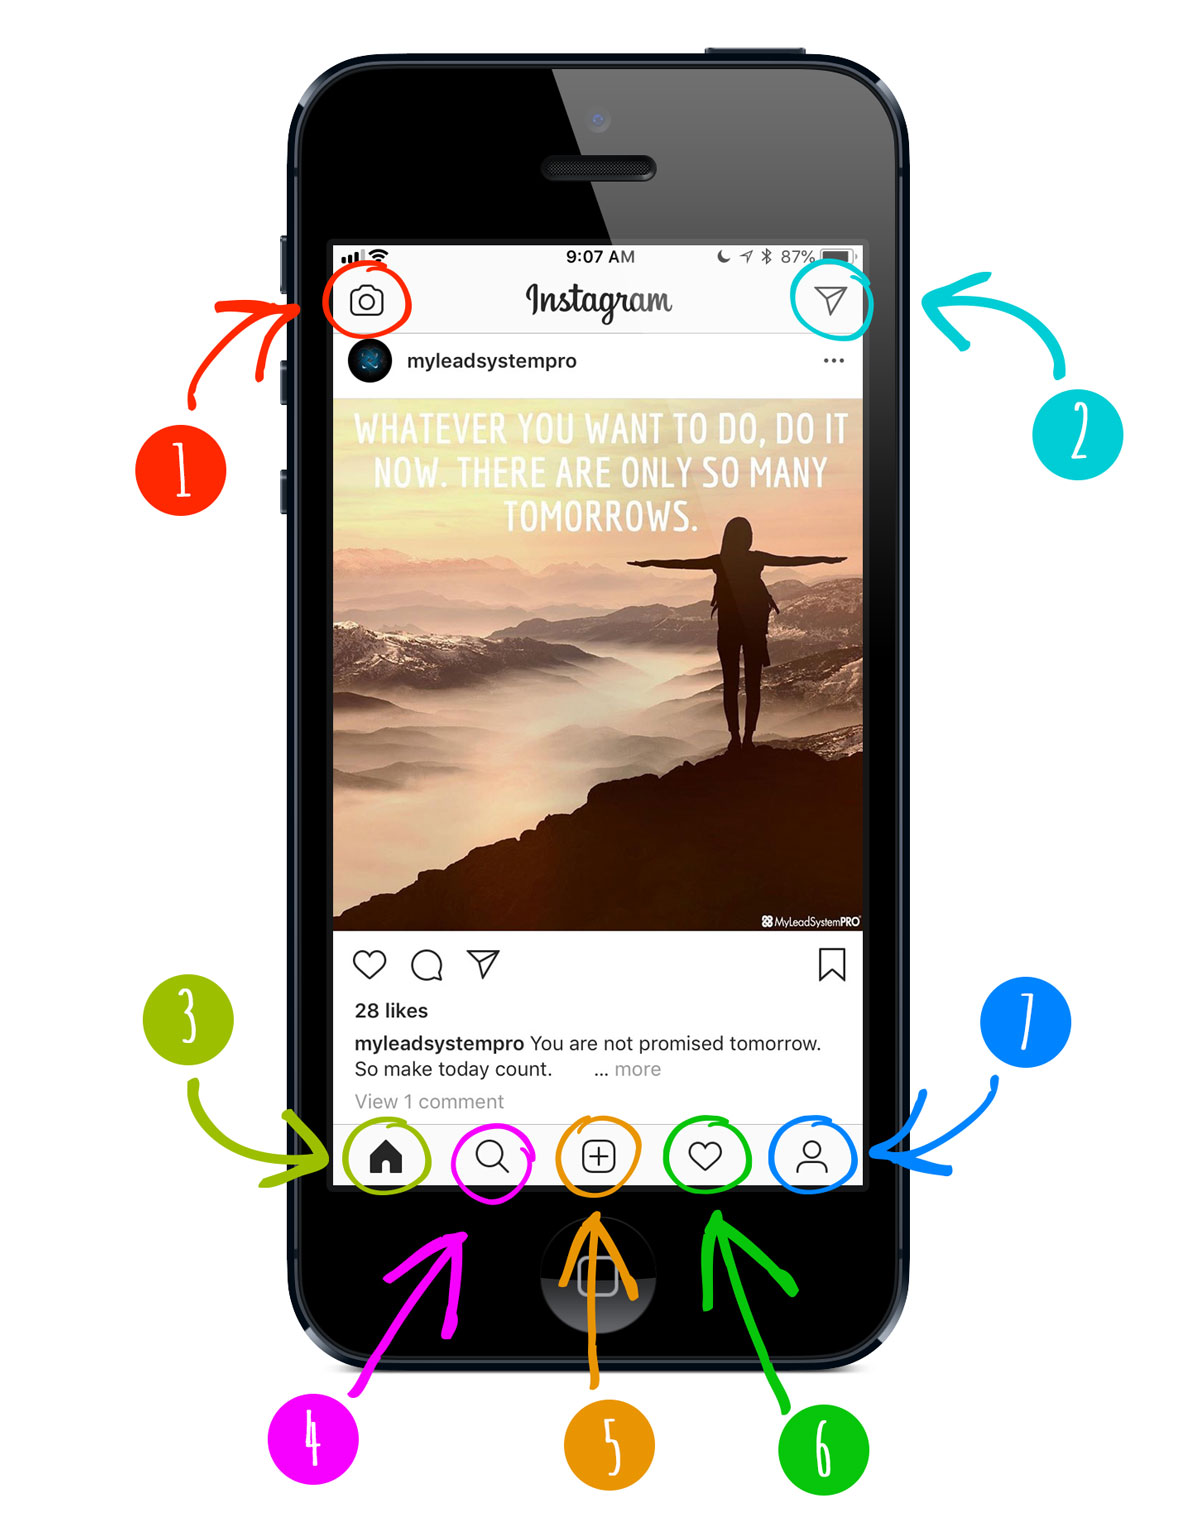 Instagram App Walkthrough